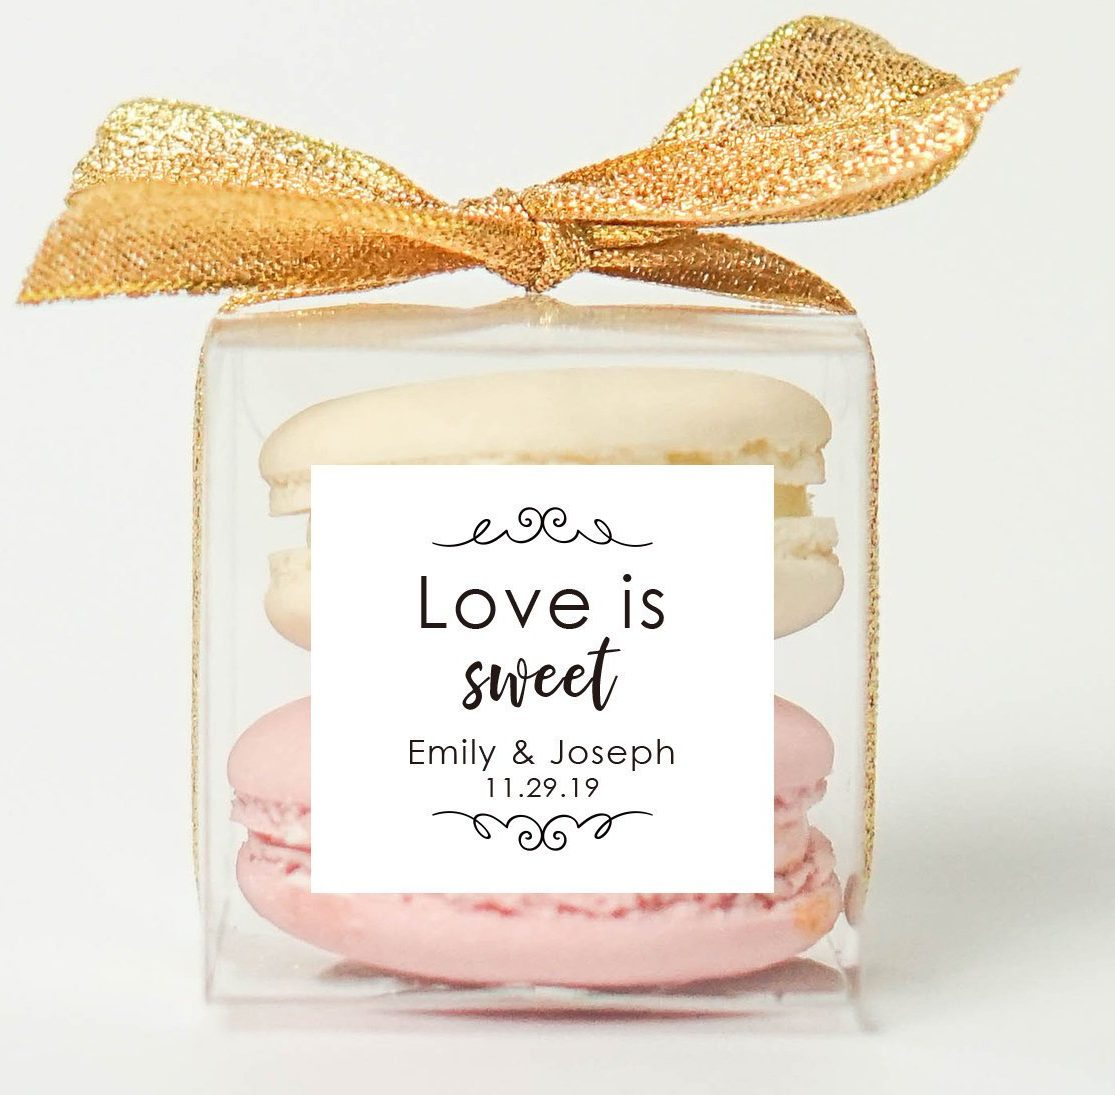 Wedding Favors: The Best Wedding Favors To Give Your Guests